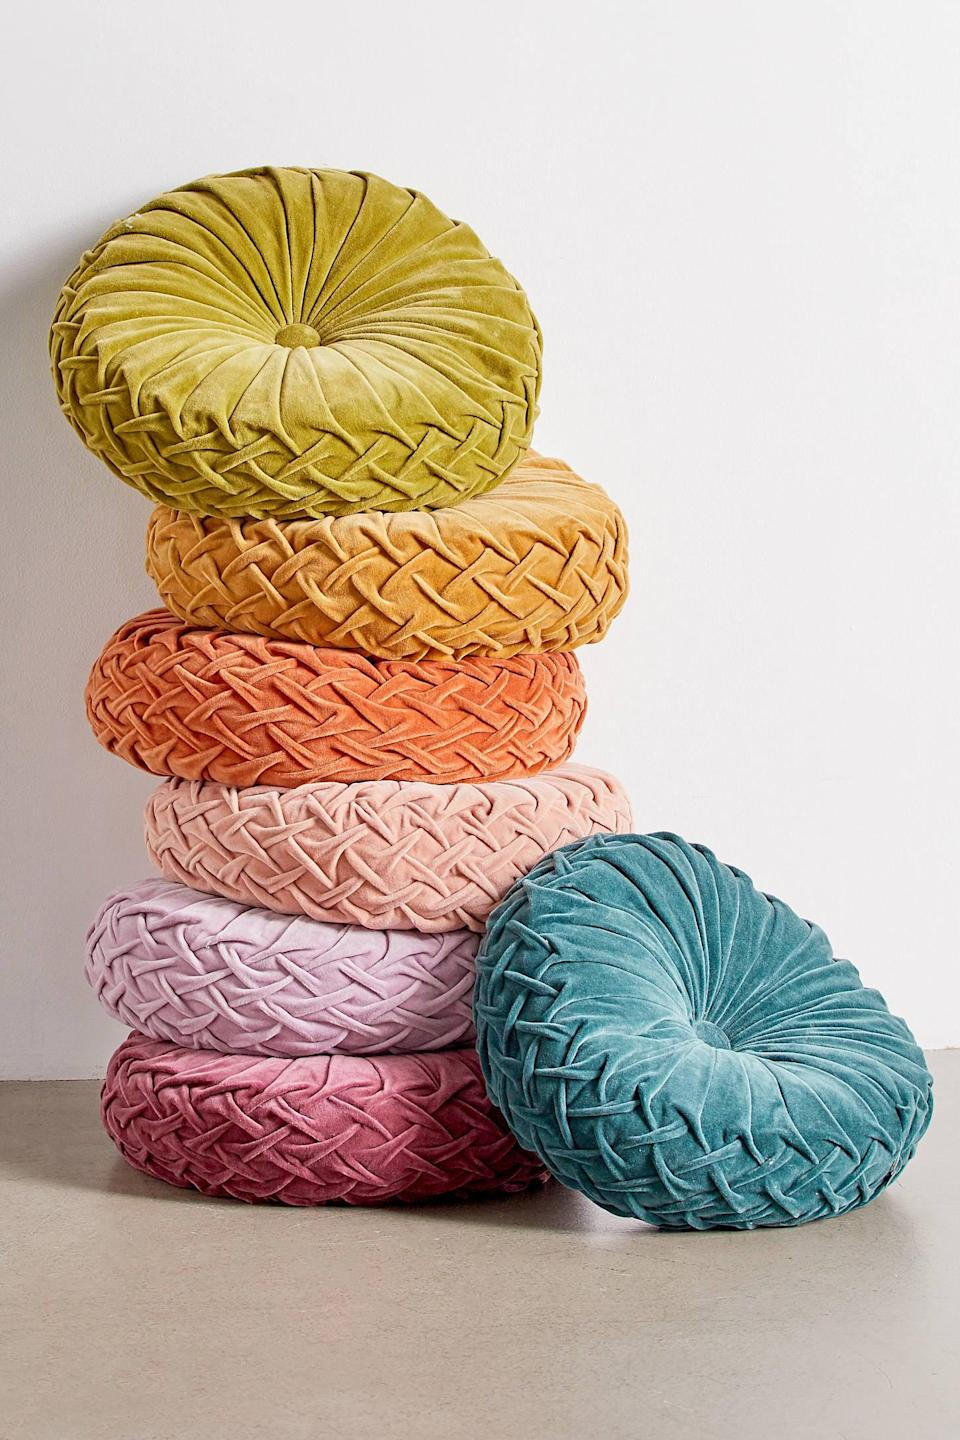 """<p>We want this <a href=""""https://www.popsugar.com/buy/Round-Pintuck-Pillow-555106?p_name=Round%20Pintuck%20Pillow&retailer=urbanoutfitters.com&pid=555106&price=29&evar1=casa%3Aus&evar9=45186448&evar98=https%3A%2F%2Fwww.popsugar.com%2Fhome%2Fphoto-gallery%2F45186448%2Fimage%2F47349986%2FRound-Pintuck-Pillow&list1=shopping%2Curban%20outfitters%2Chome%20decor%2Csmall%20space%20living%2Cdecor%20shopping&prop13=mobile&pdata=1"""" class=""""link rapid-noclick-resp"""" rel=""""nofollow noopener"""" target=""""_blank"""" data-ylk=""""slk:Round Pintuck Pillow"""">Round Pintuck Pillow</a> ($29, originally $39) in every color.</p>"""